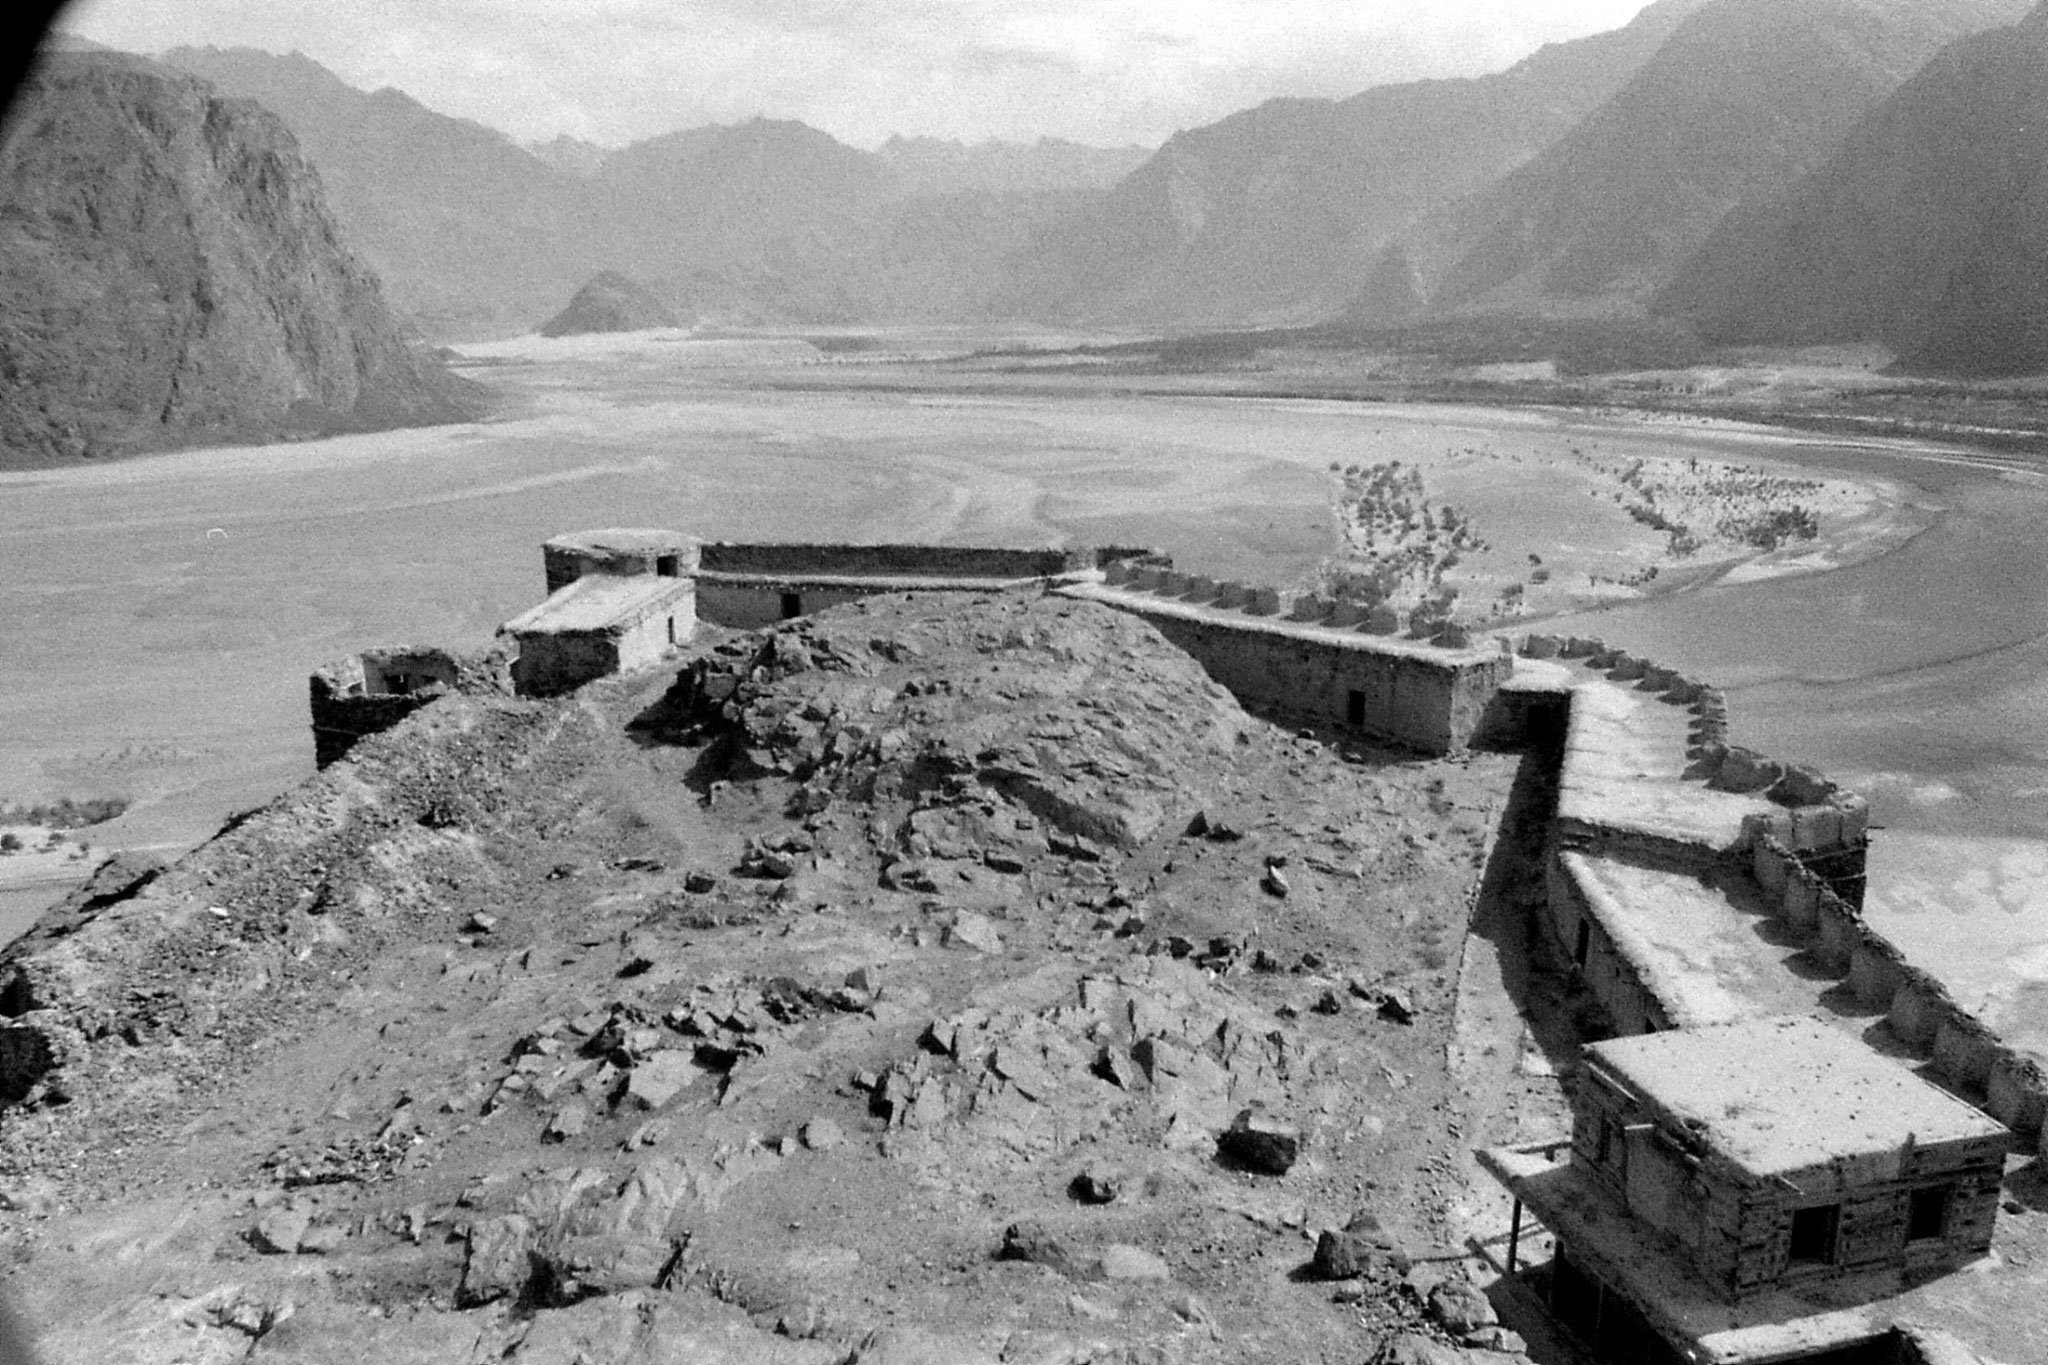 10/10/1989: 8: Skardu fort and Indus looking east